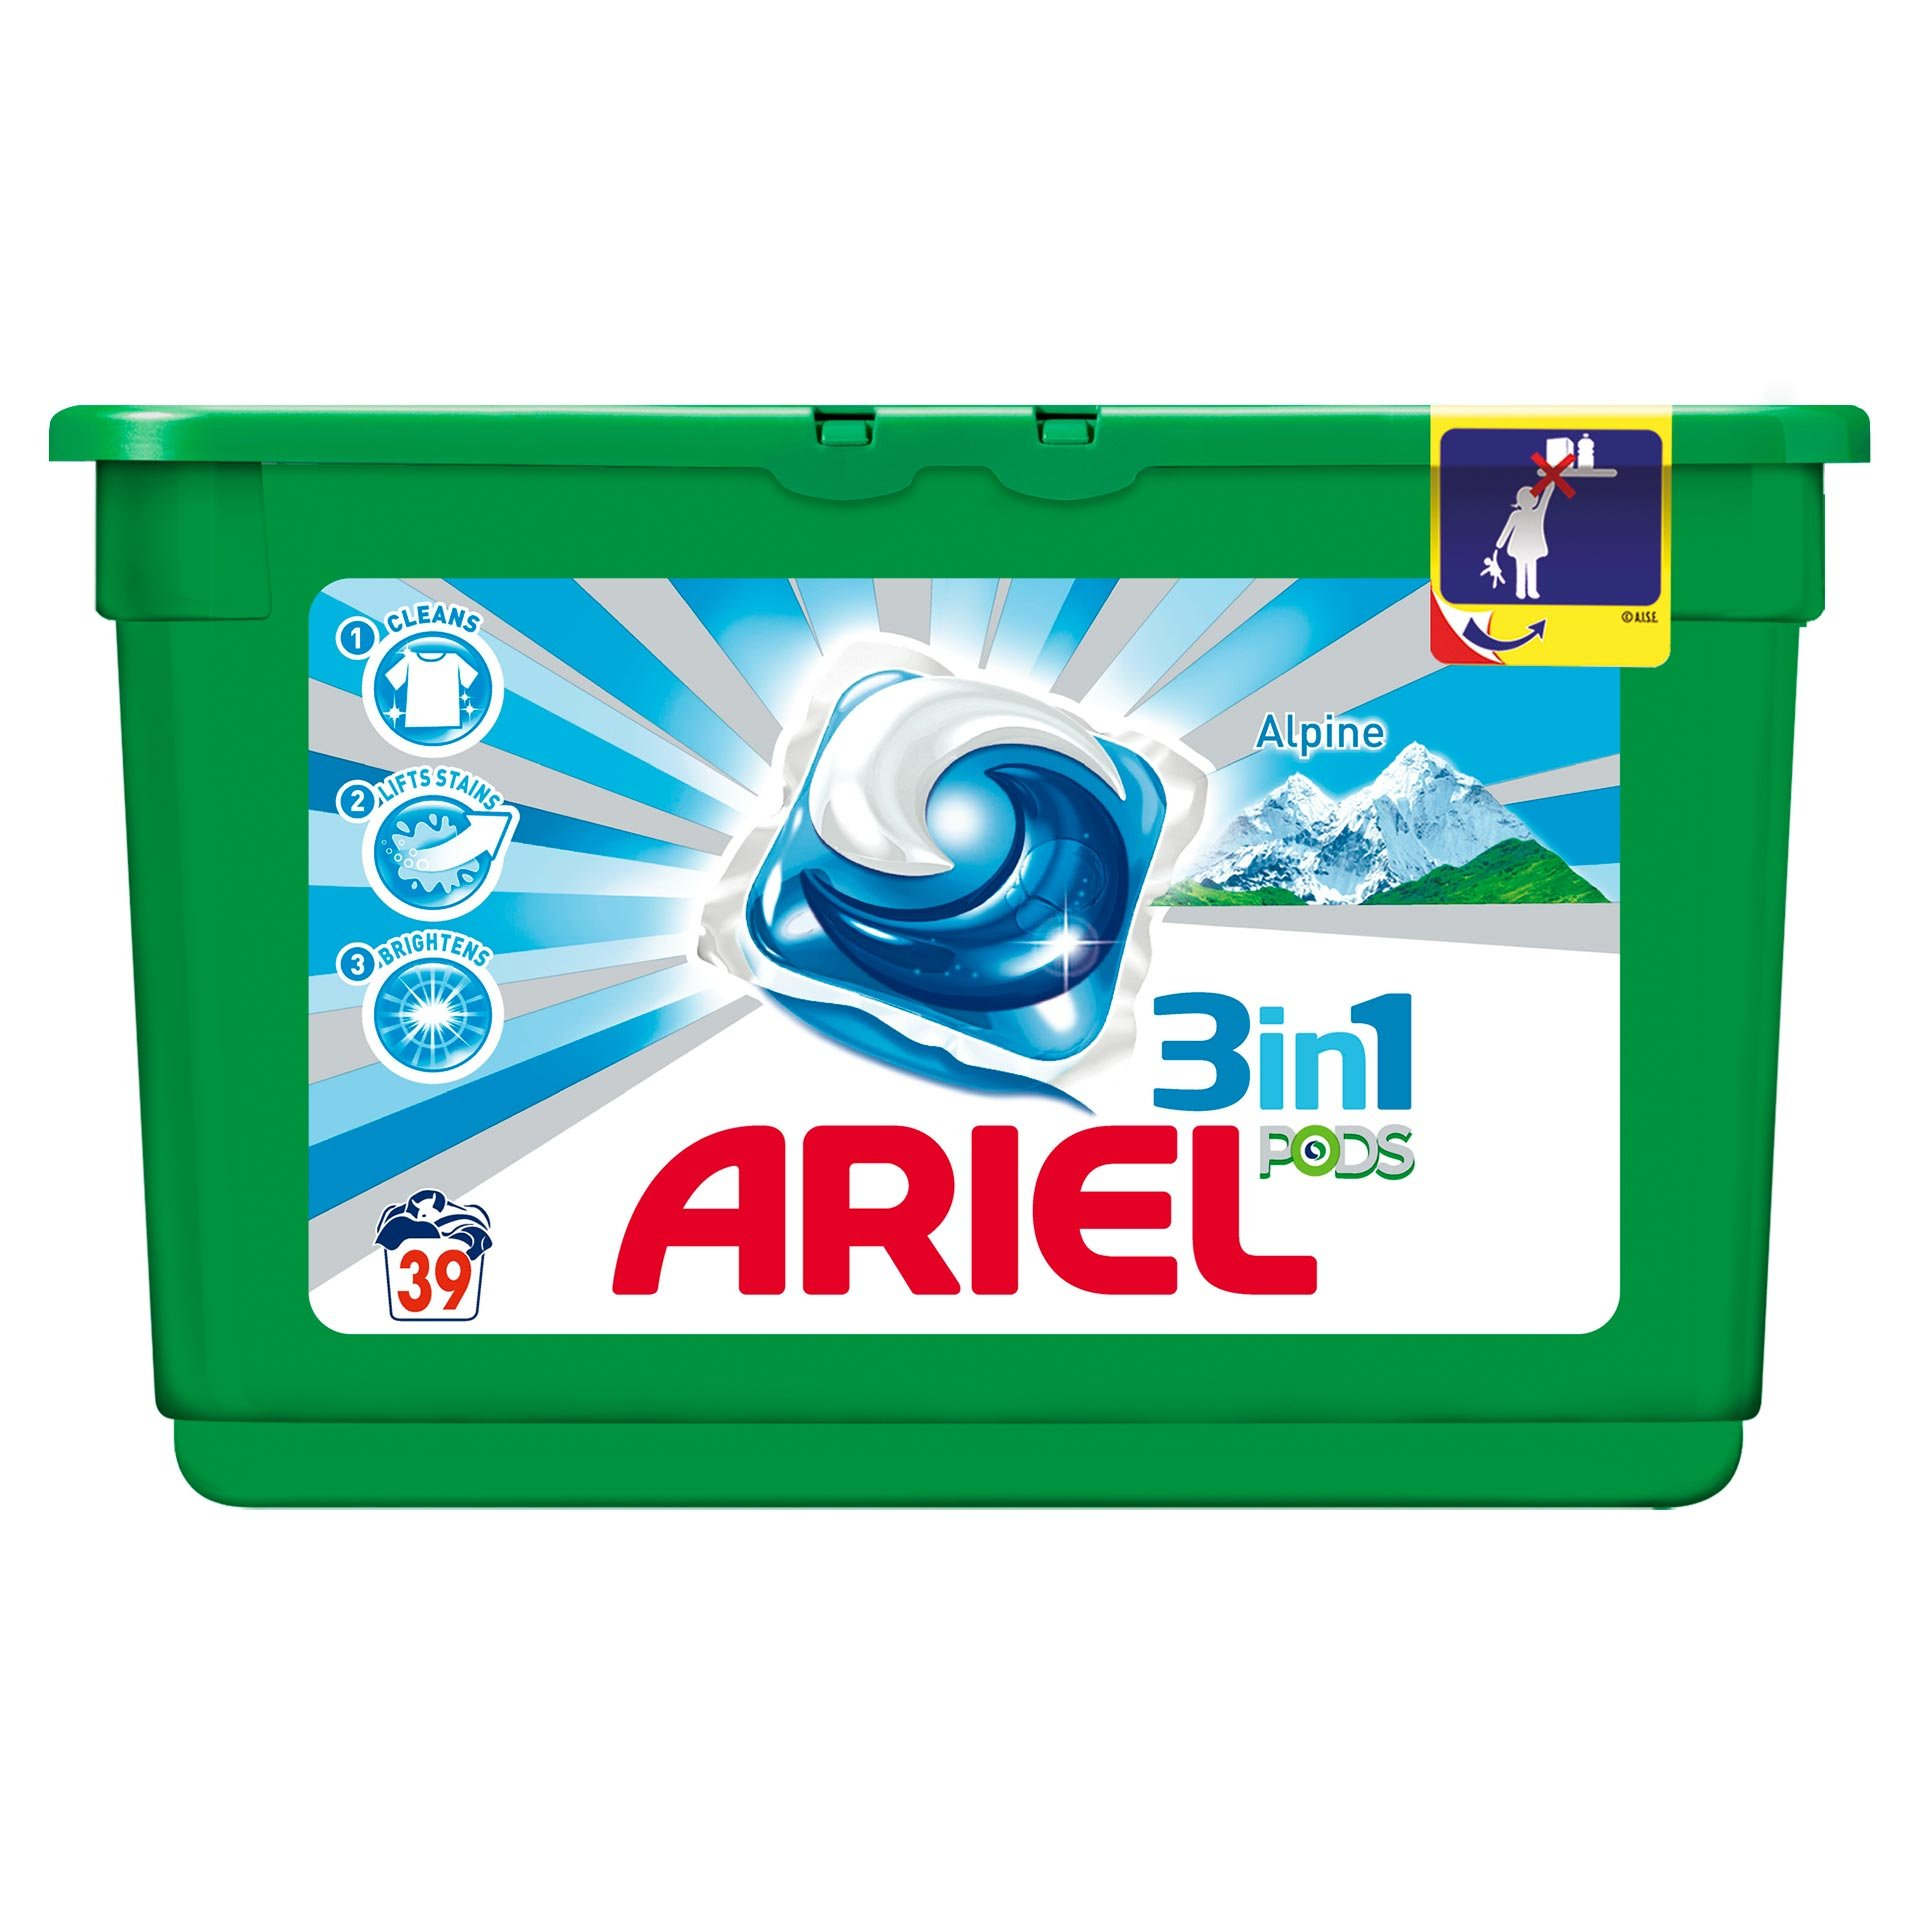 Ariel 3 in 1 Alpin Gel Capsules 39